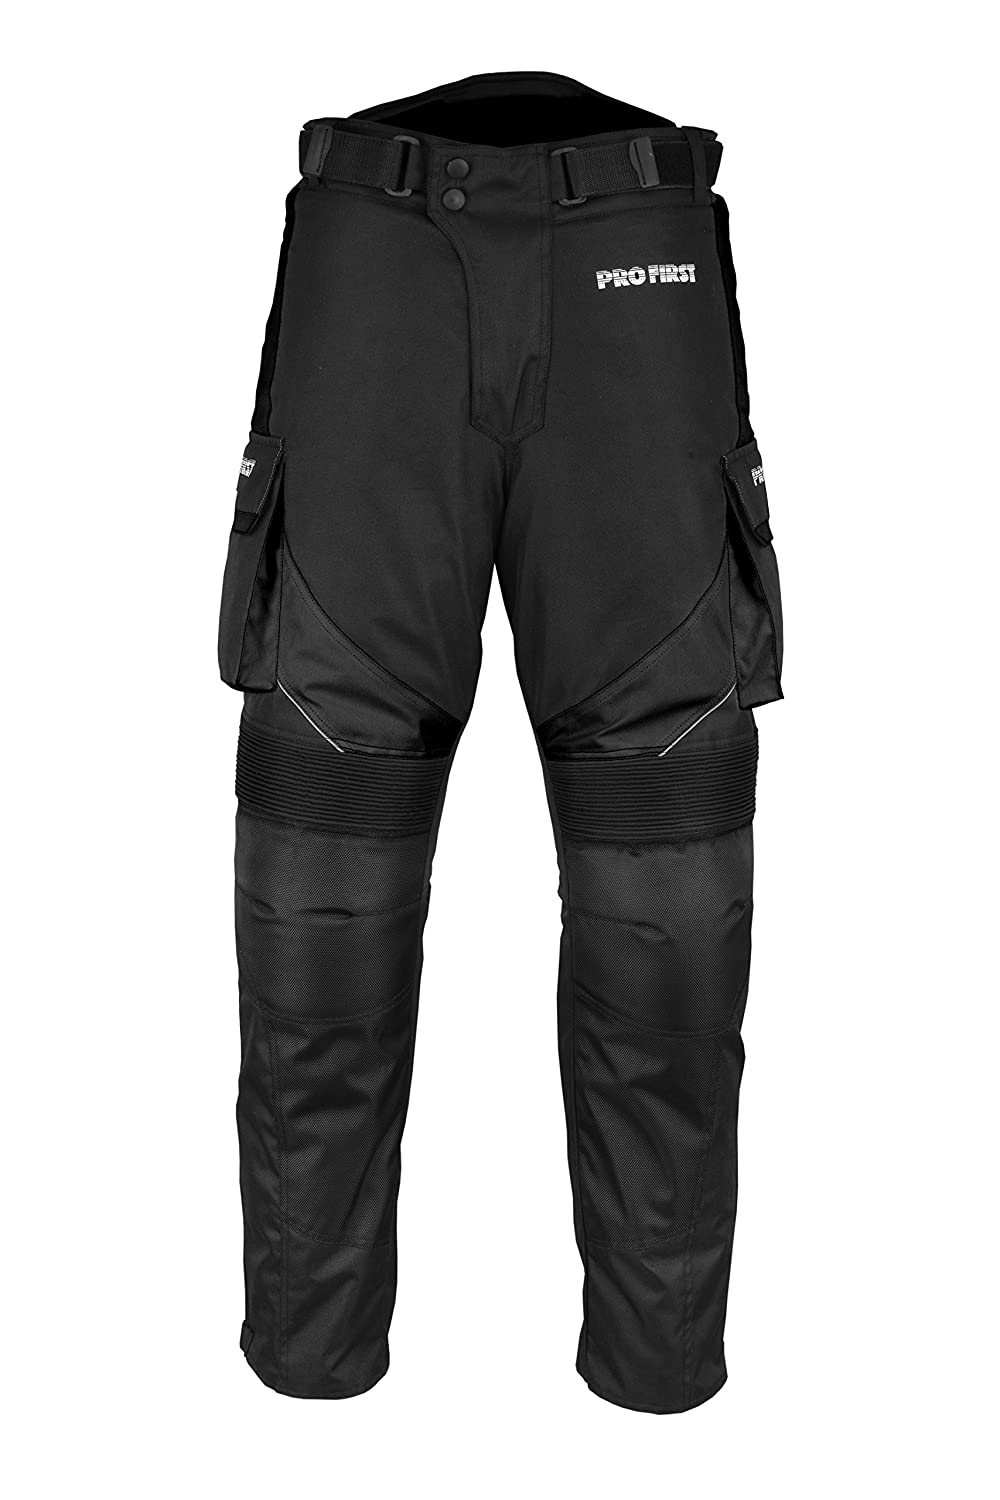 Motorbike Trouser Motorcycle Waterproof Removable Cordura Textile Big Pocket Trousers Long Pants Armor Armoured For Mens Women Boys Adult 29 Leg-Size 5Xtra Large